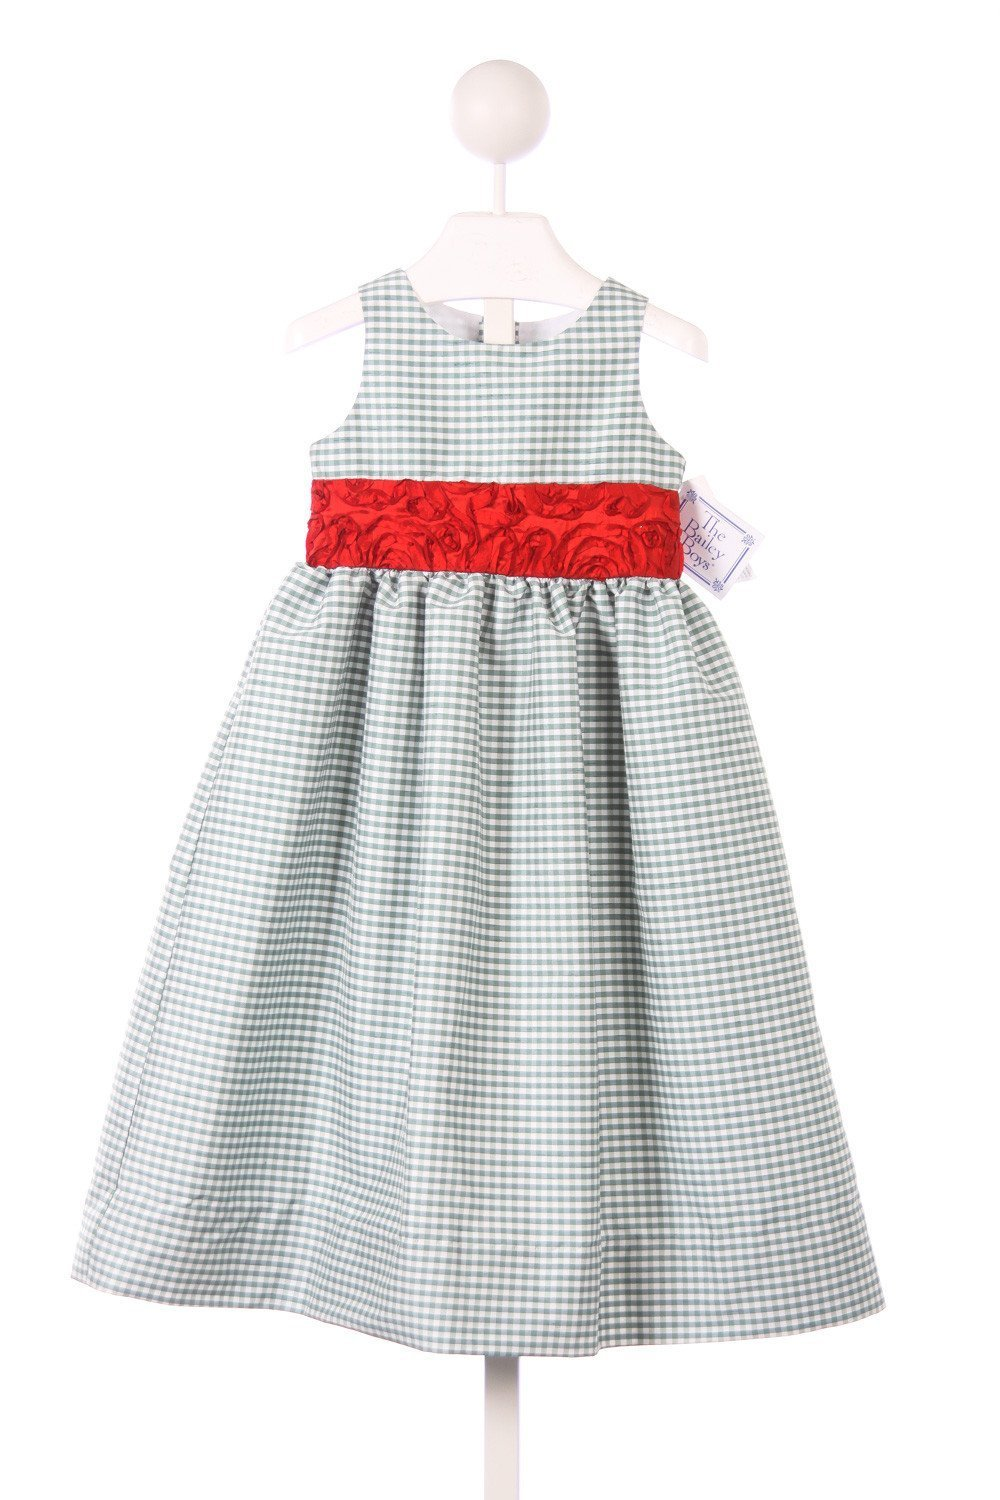 BAILEY BOYS GREEN AND WHITE CHECKED DRESS WITH RED WAISTBAND